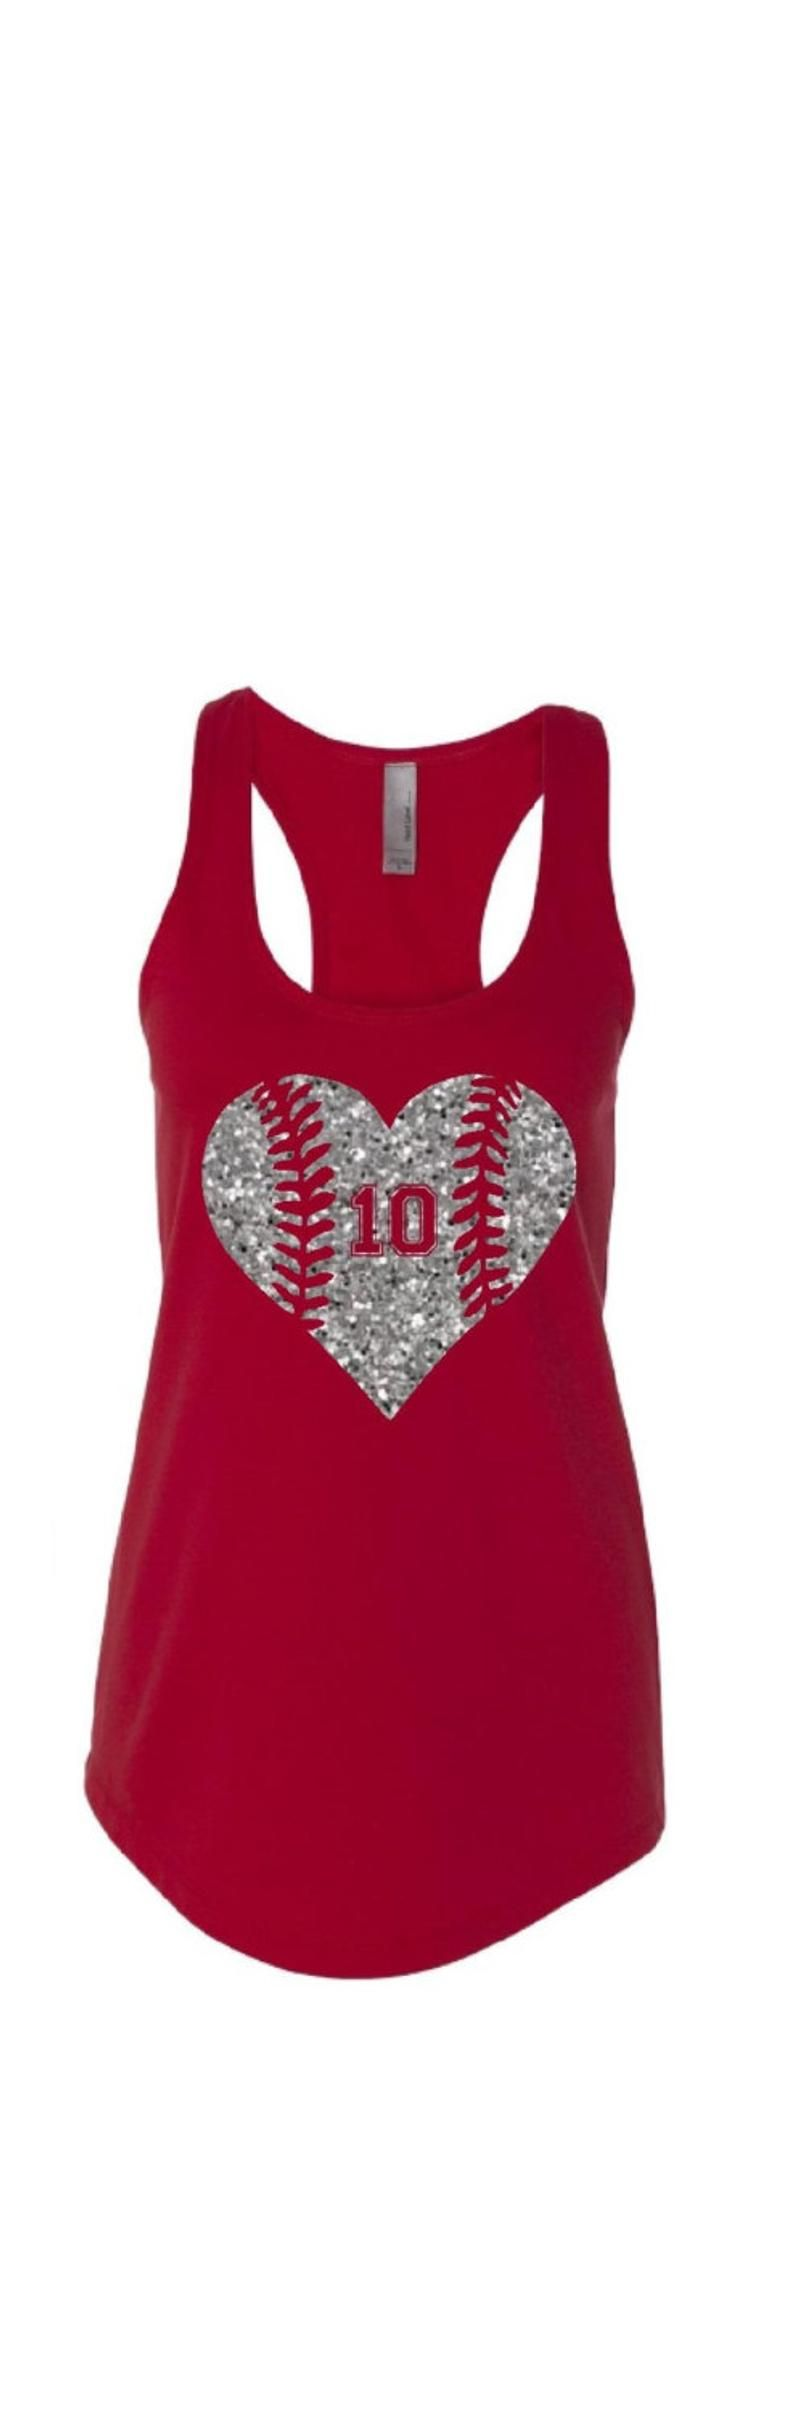 Photo of Baseball Heart Tank. Softball Mom. Baseball Mom Tanks. Mom Baseball Tanks. Glitter Baseball.  Add custom number to notes to seller.